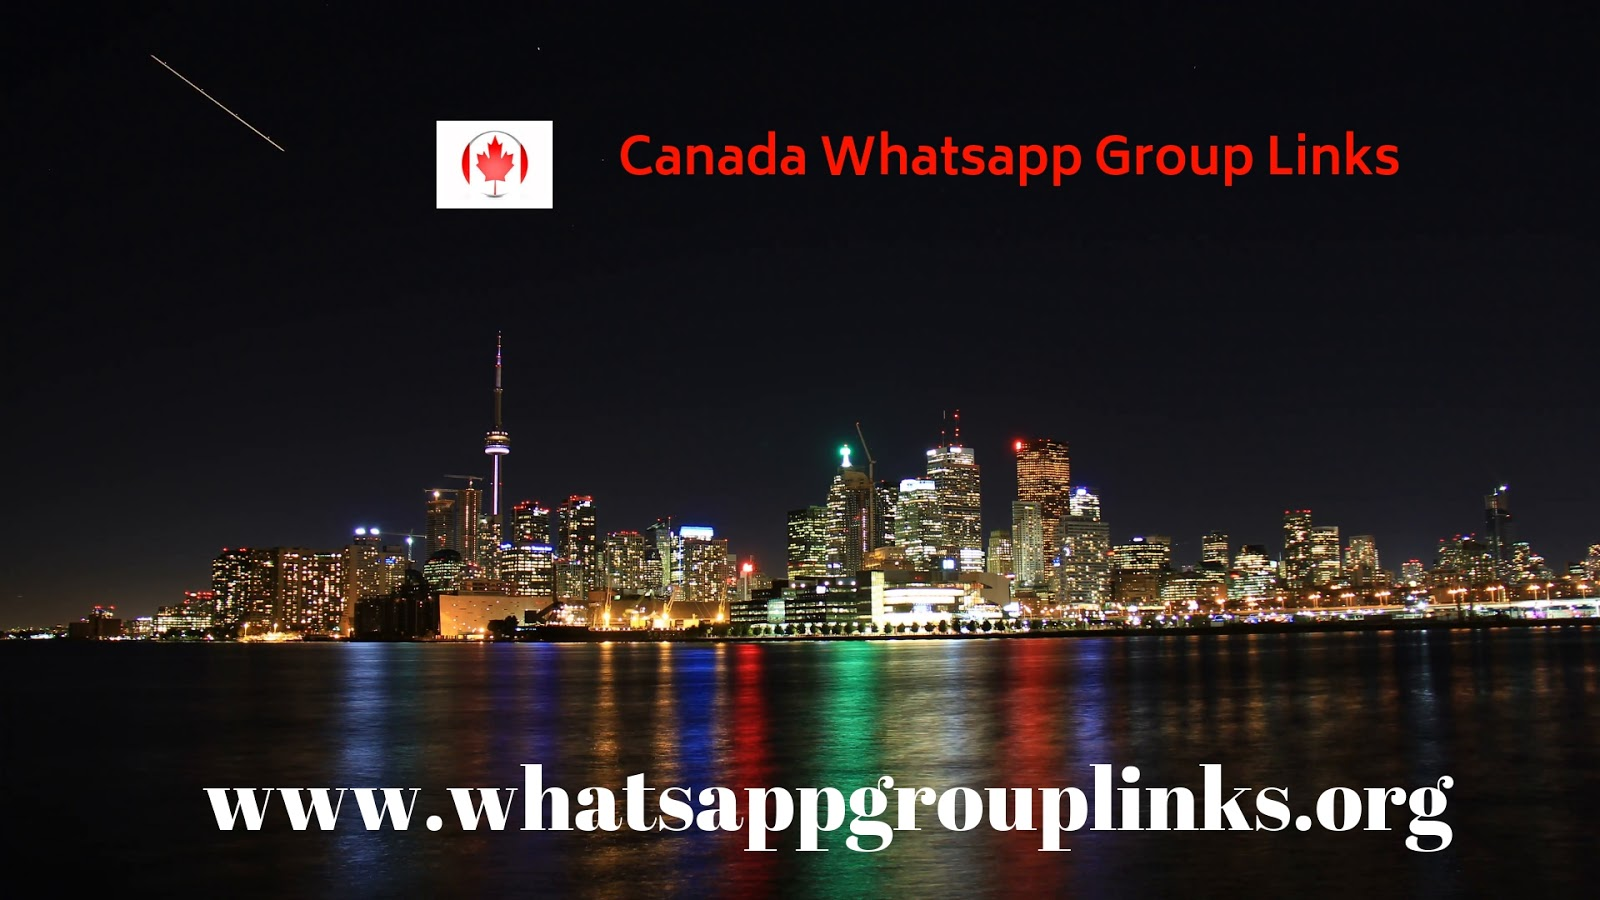 join canada whatsapp group links list - Whatsapp Group Links